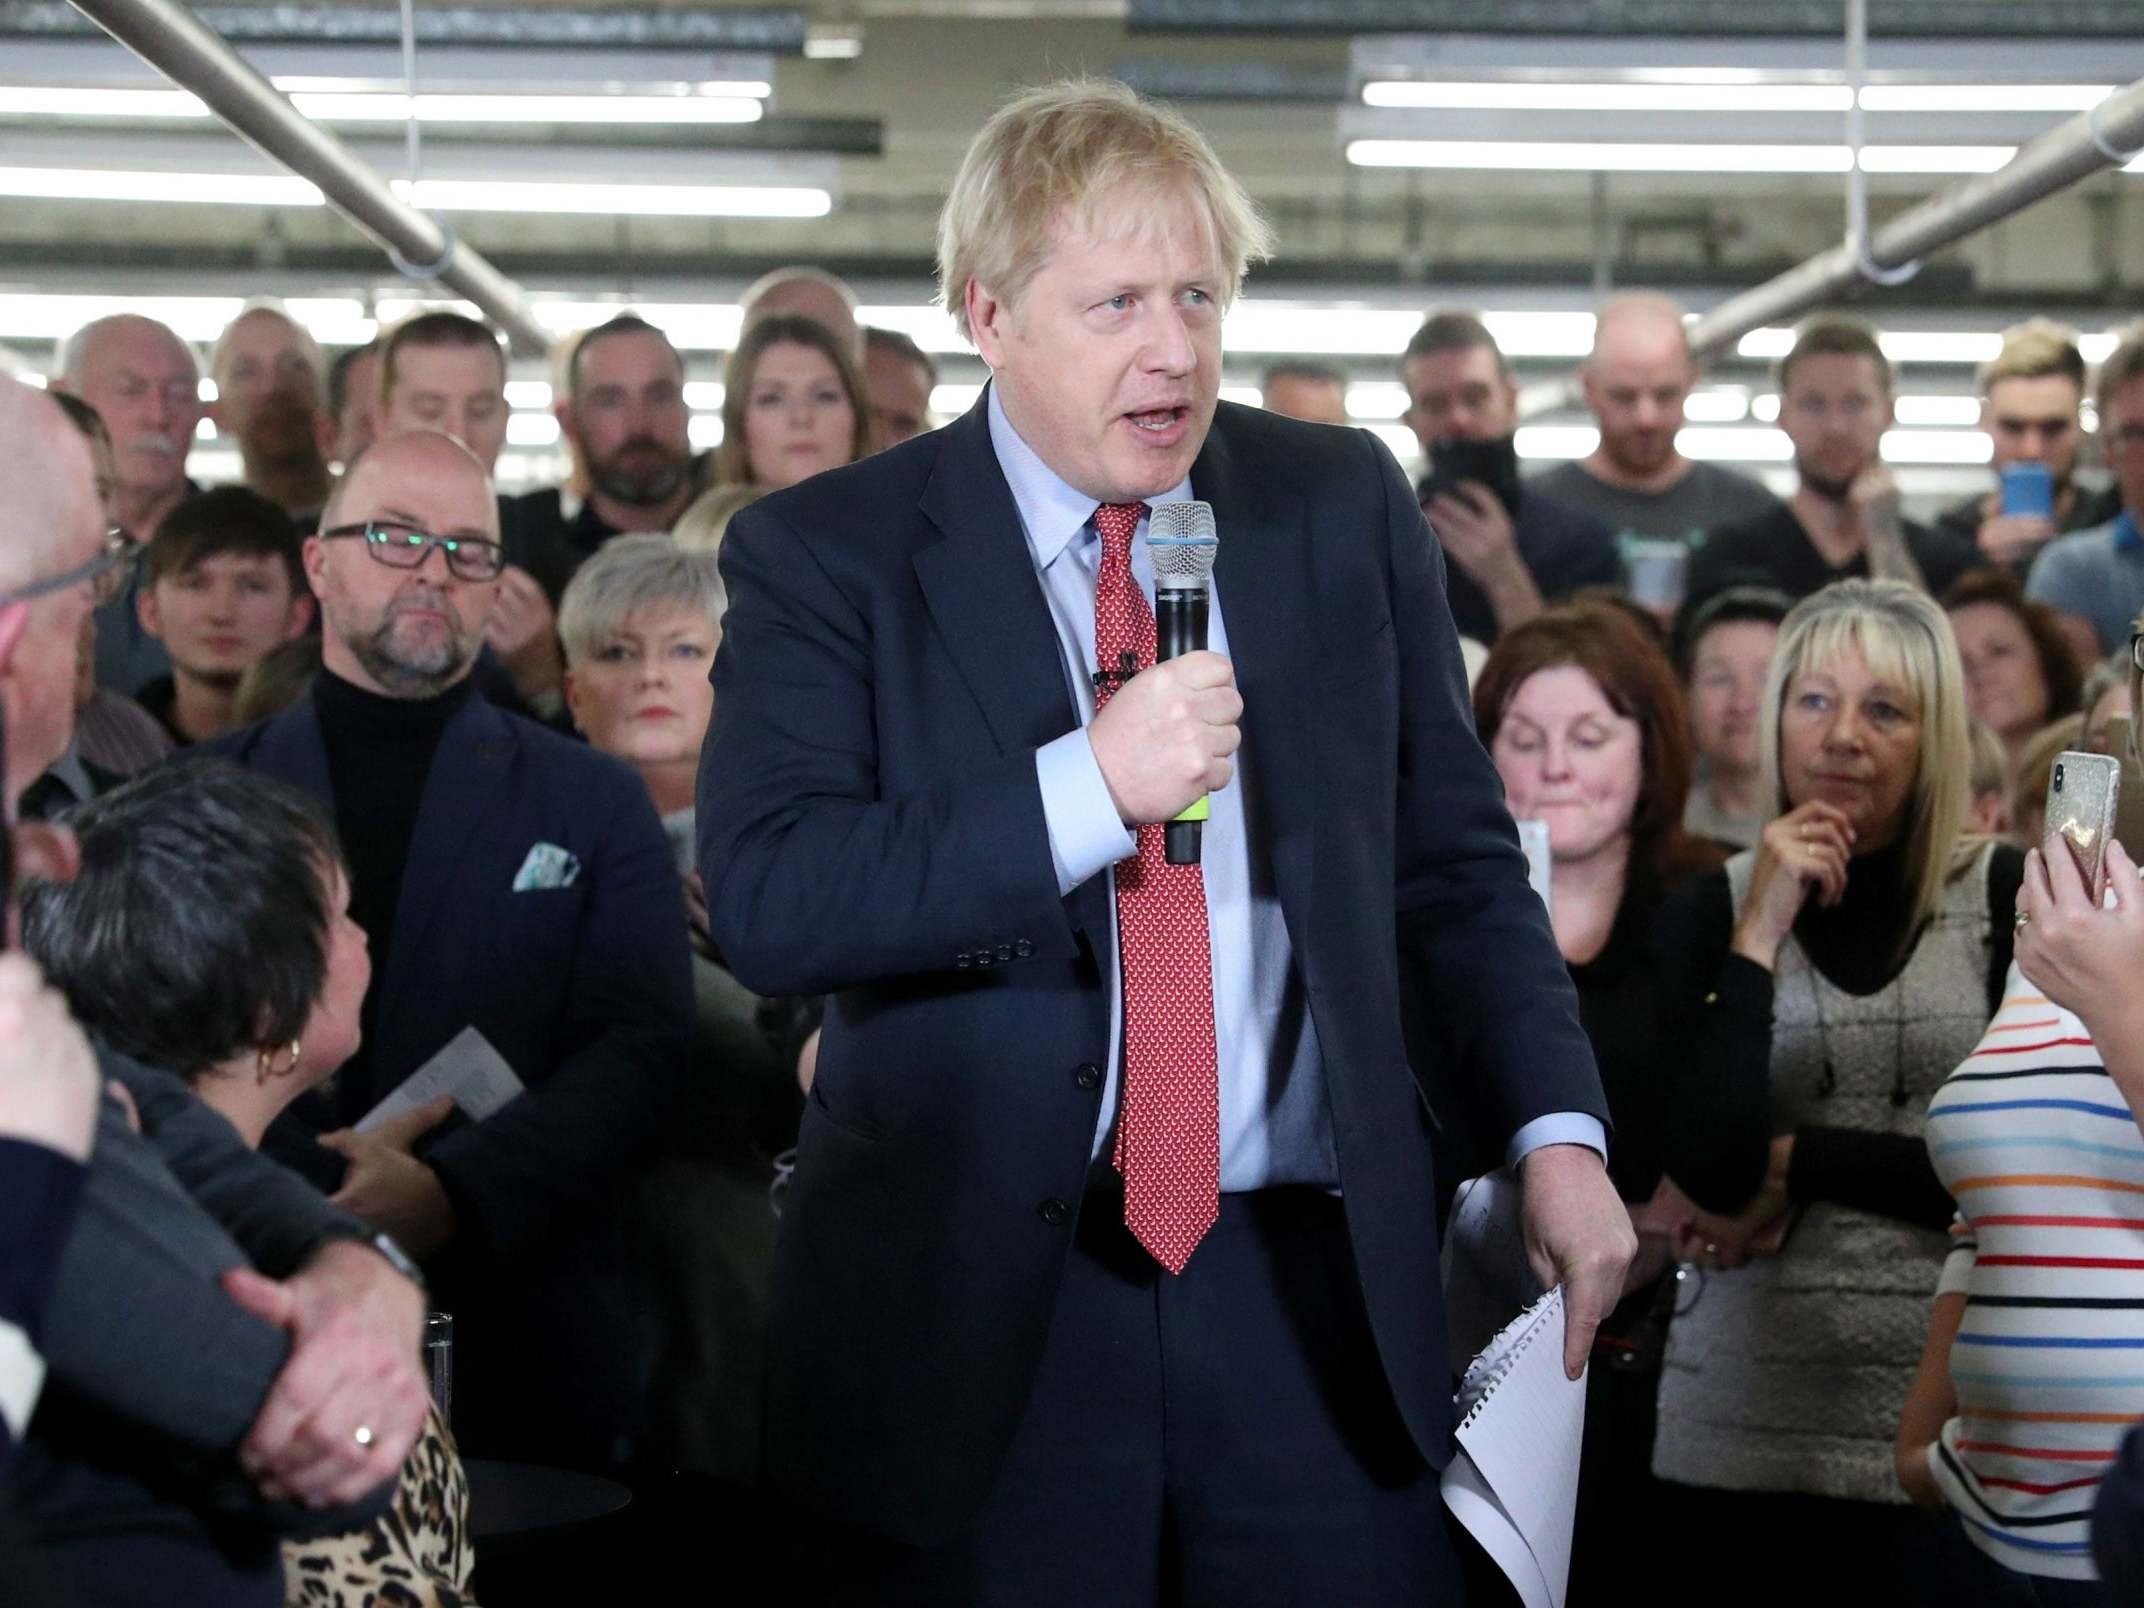 It doesn't matter that Boris Johnson actually said 'people of talent' – his views on race speak for themselves